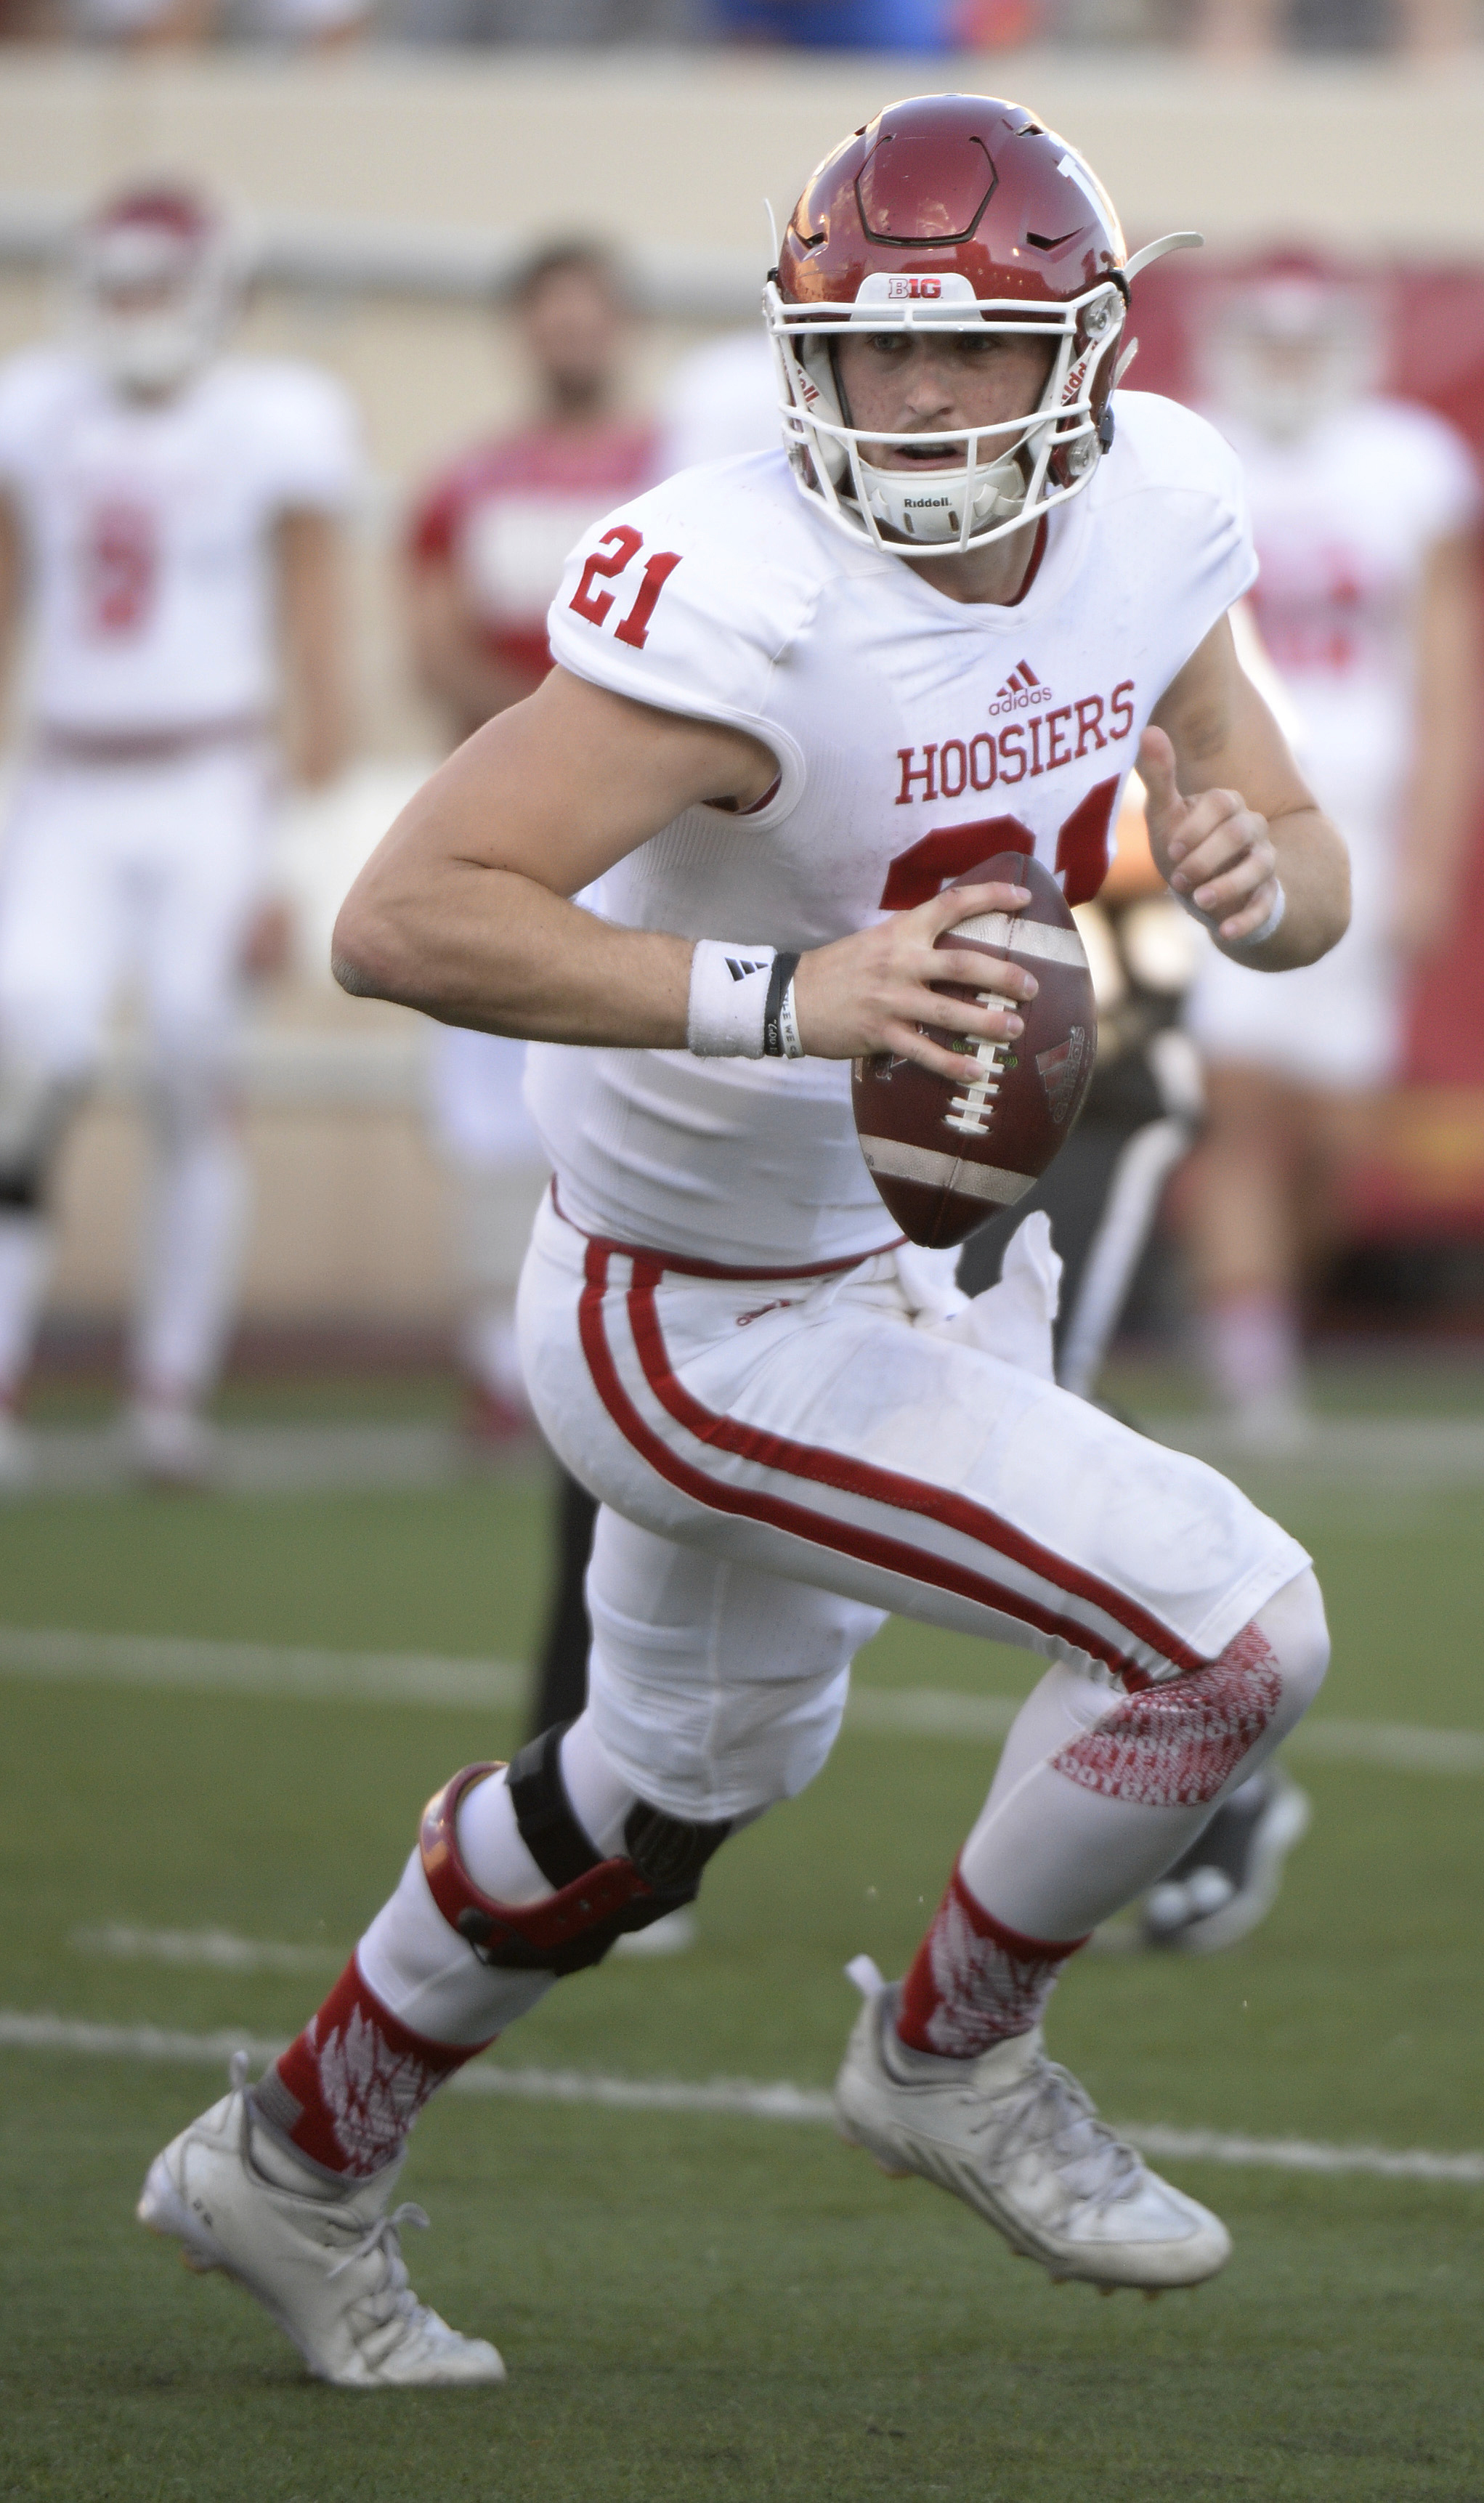 FILE - In this April 15, 2016, file photo, Indiana quarterback Richard Lagow (21) rolls out during the Cream and Crimson spring football game at Memorial Stadium in Bloomington, Ind. Lagow will start Thursday night at Florida International. Coach Kevin Wi